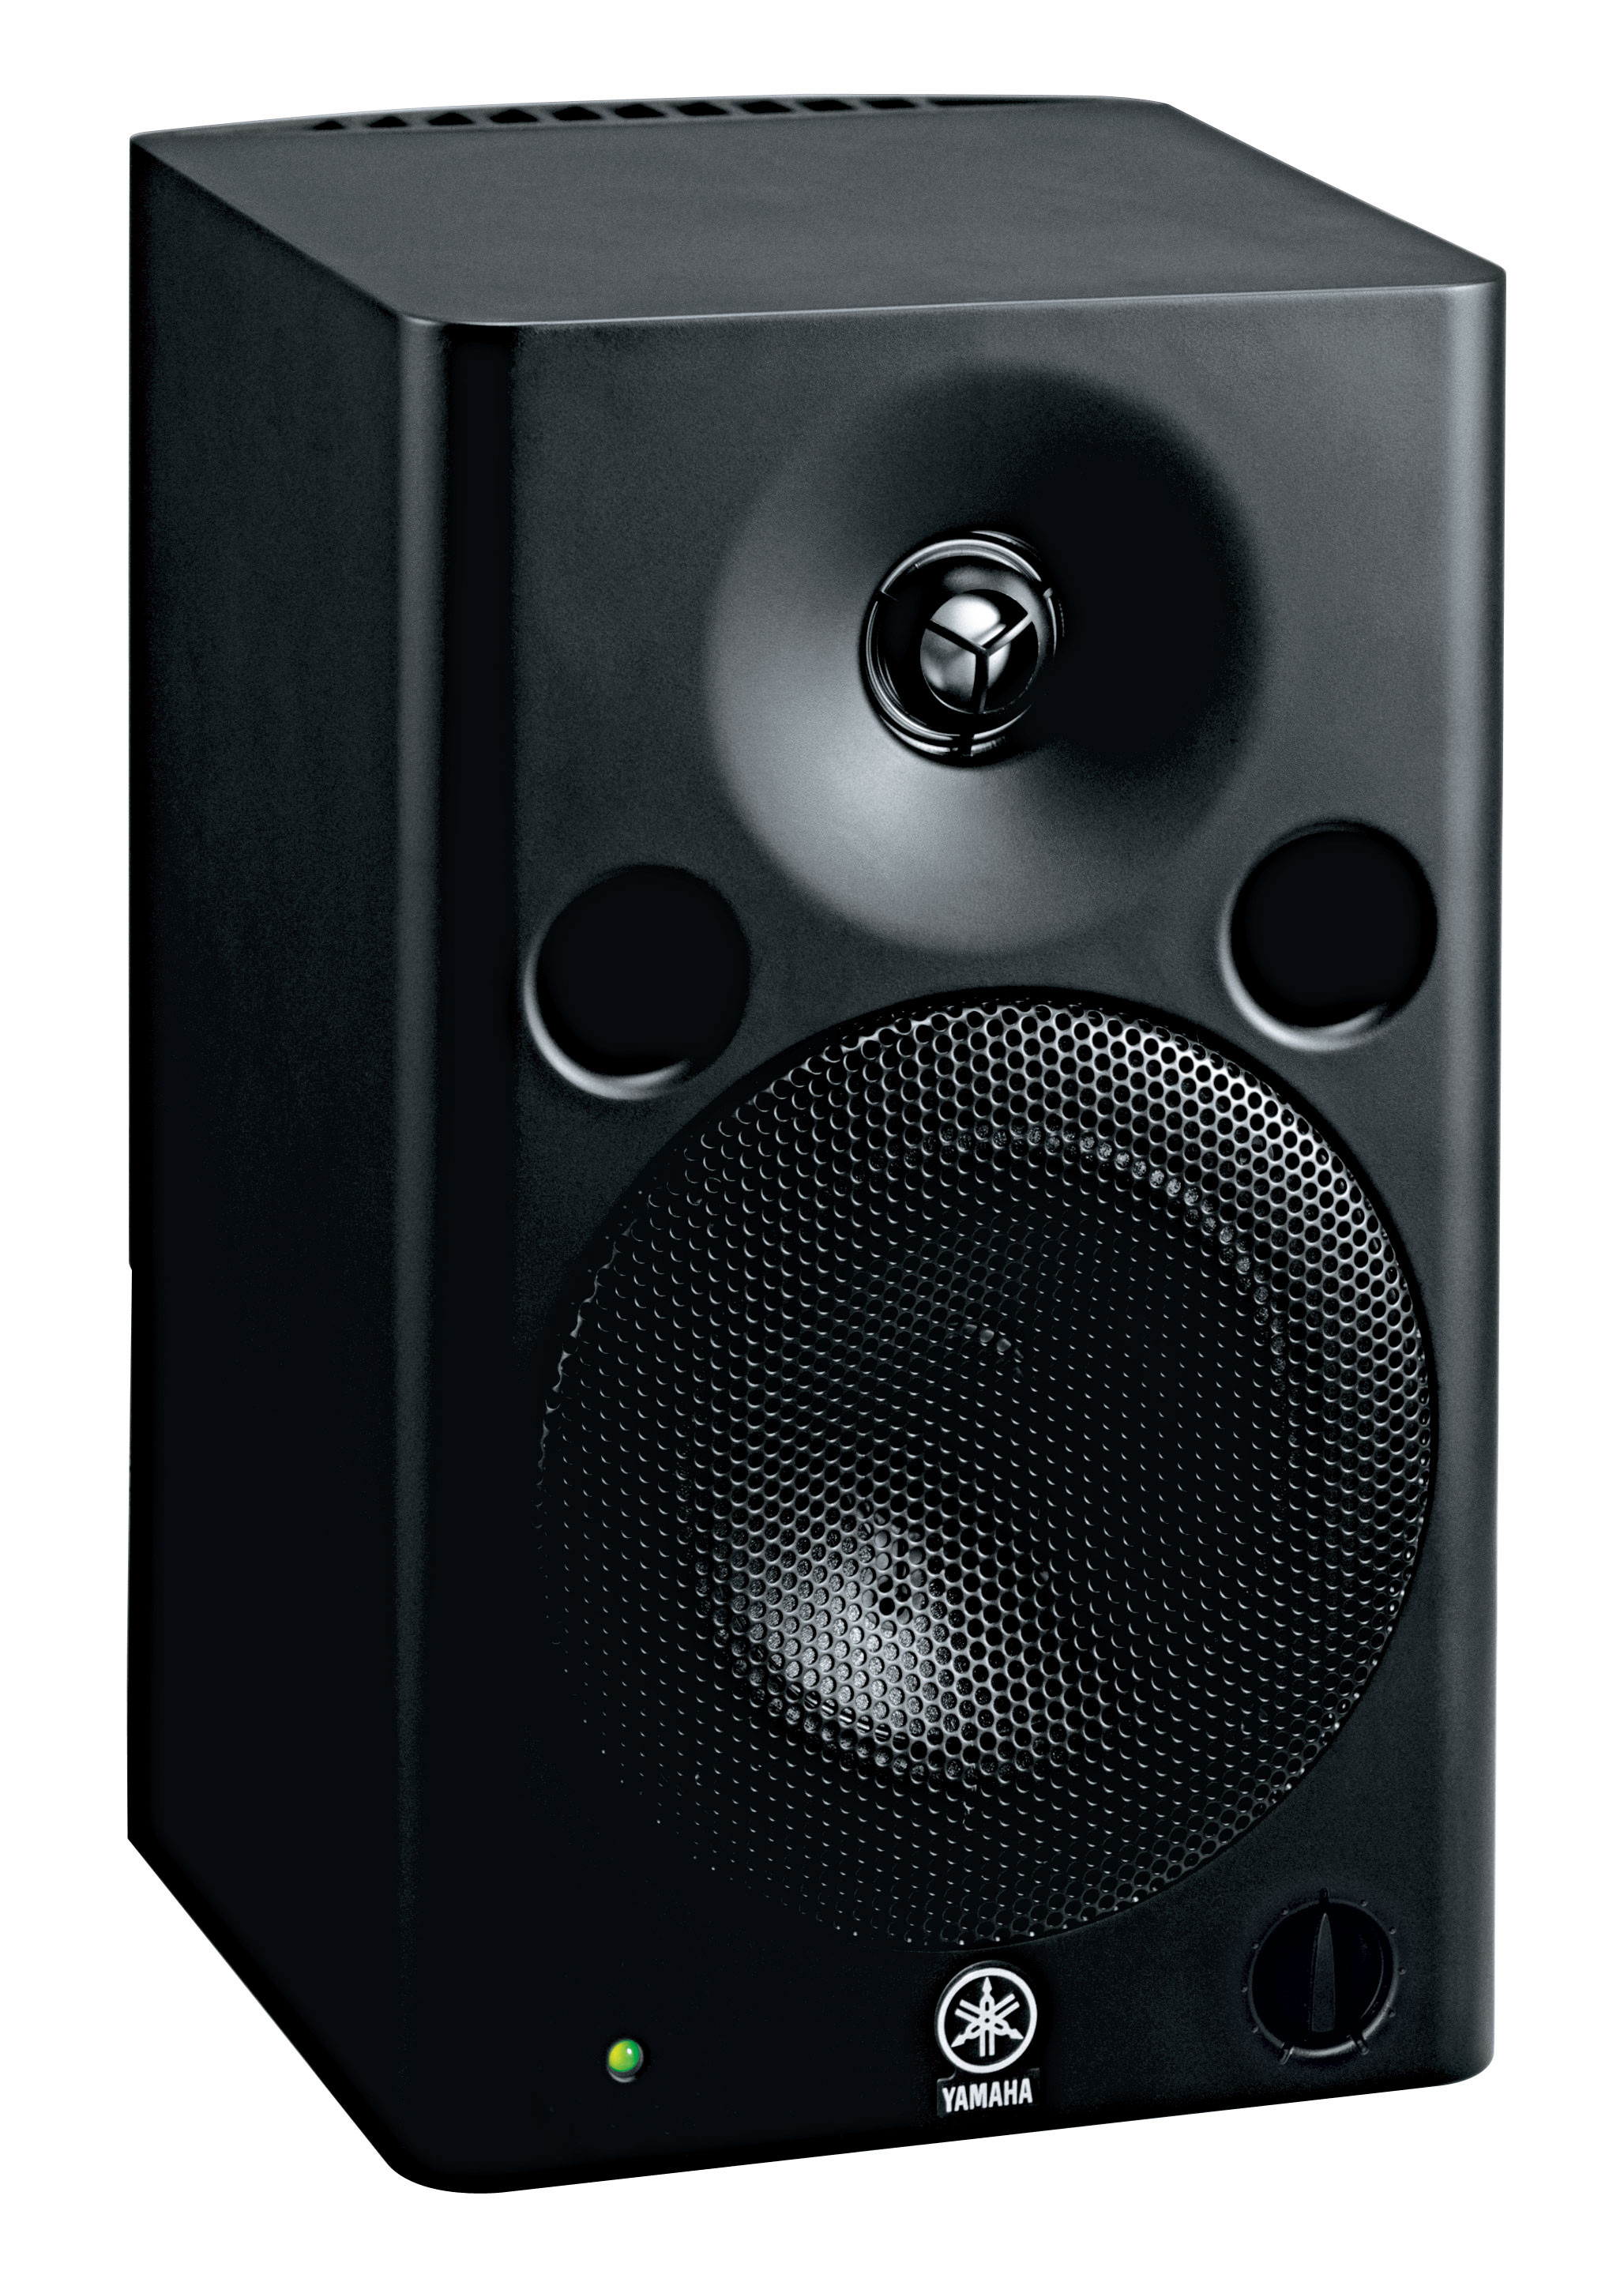 yamaha msp5 studio monitor speaker yamaha music london